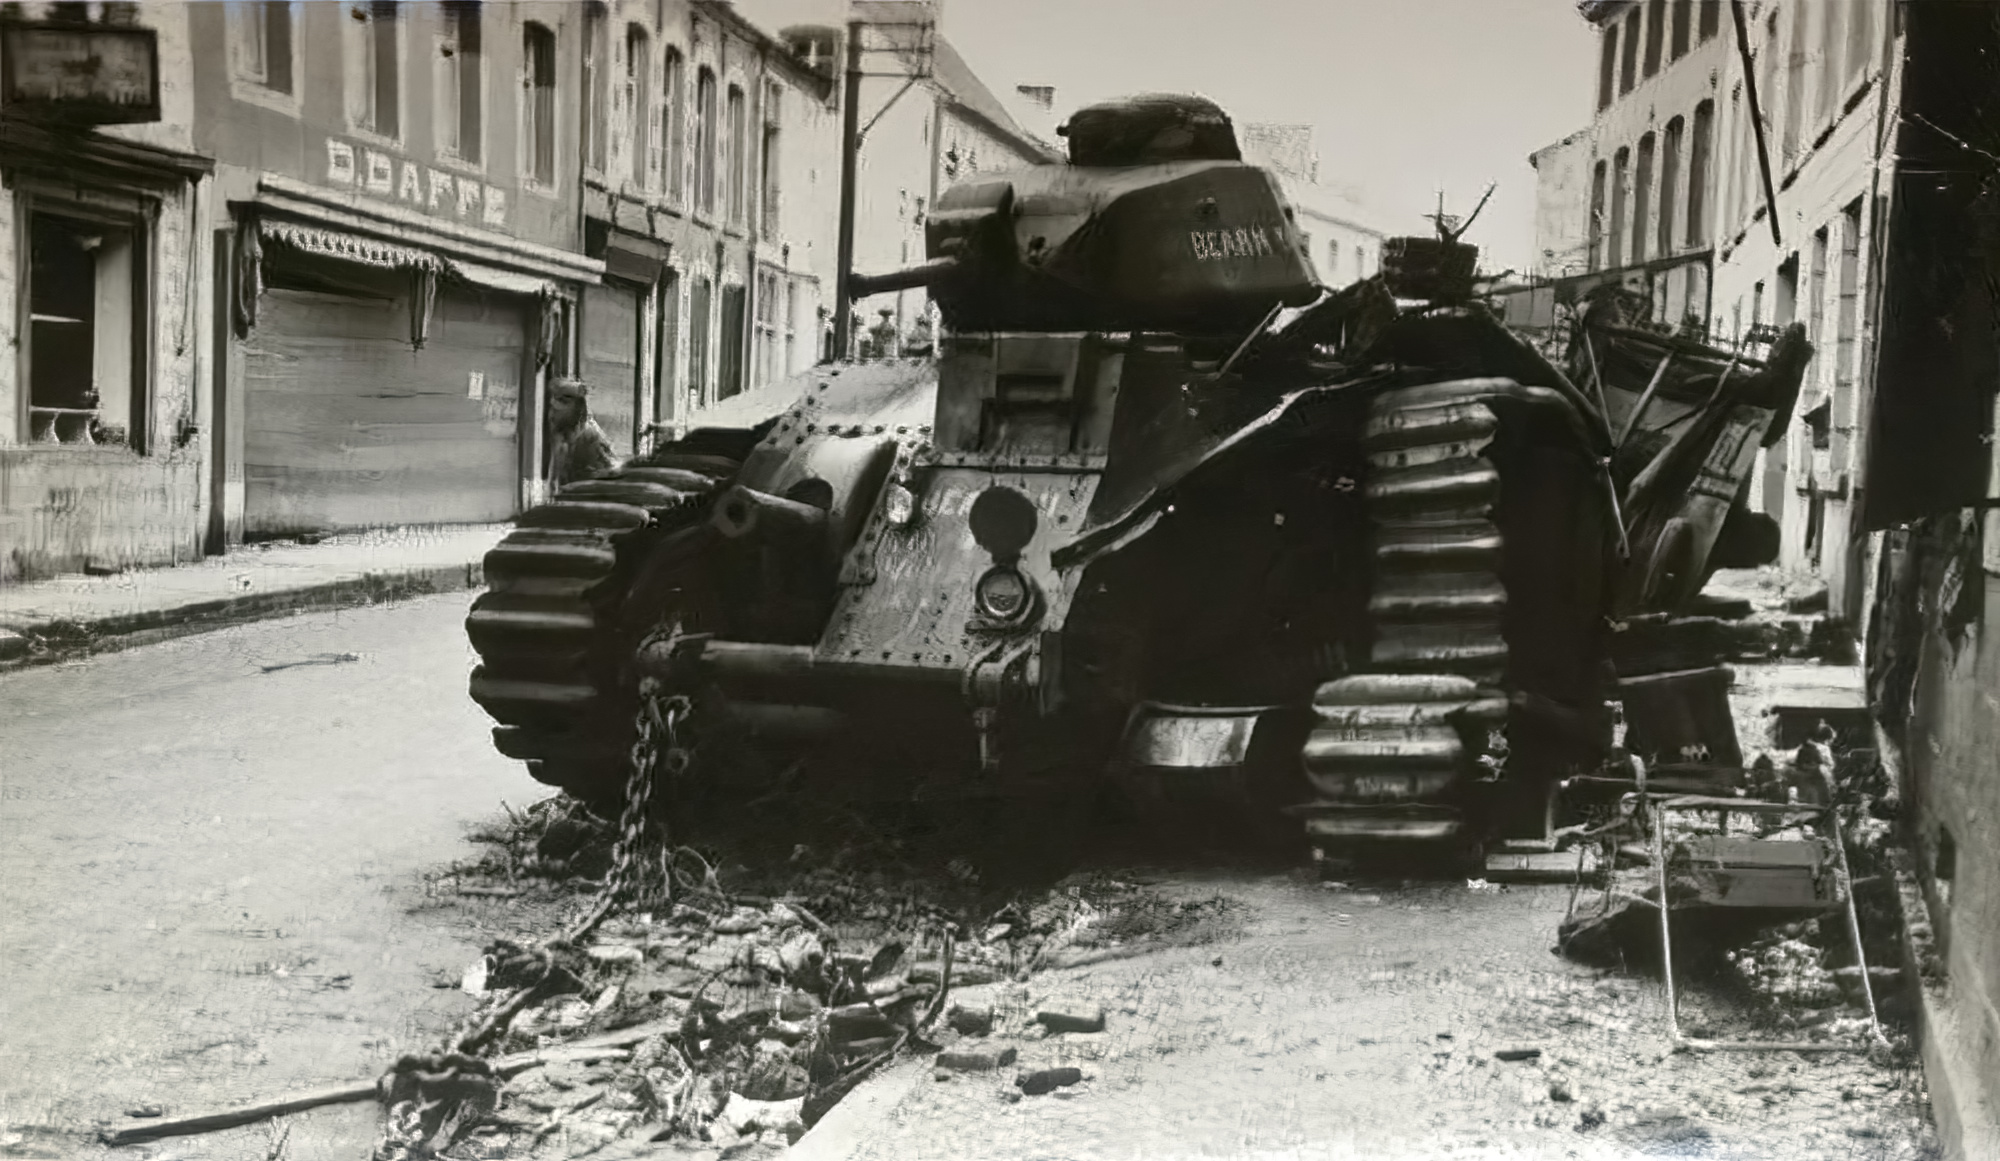 French Army Renault Char B1 named Bearn II knocked out during the battle of France 1940 ebay 02